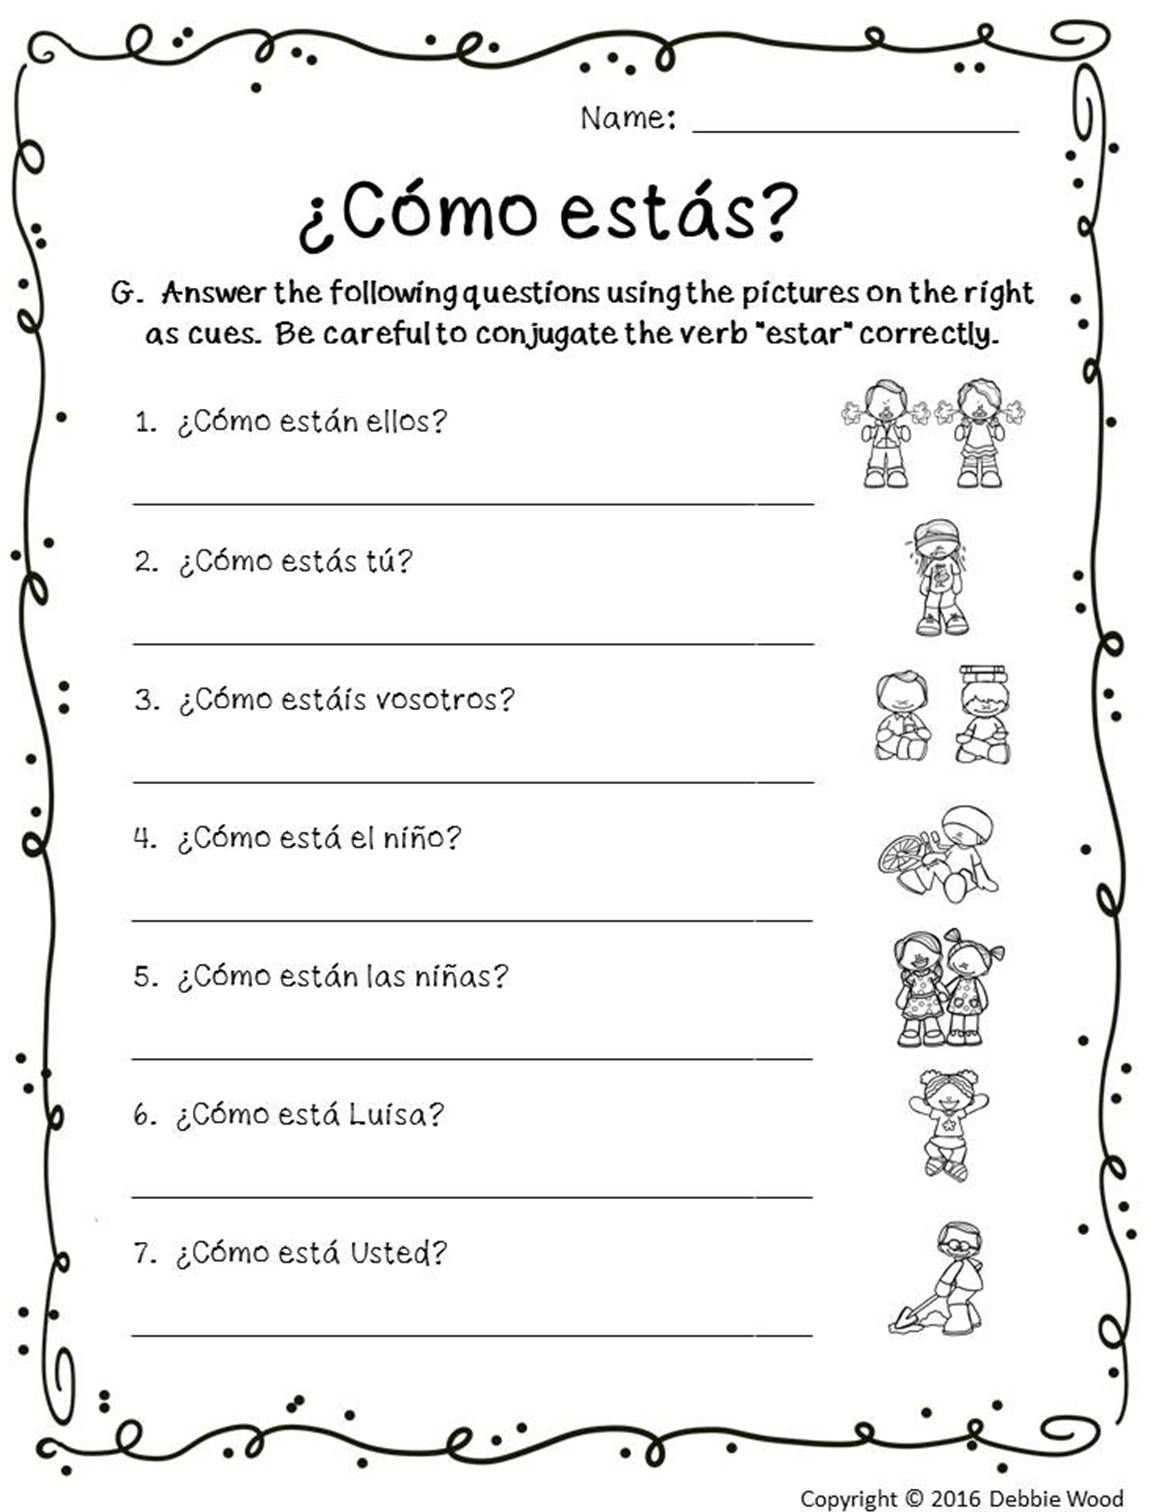 Worksheets Spanish Worksheets For Elementary Students spanish verb estar posters and worksheets classroom classroomteaching